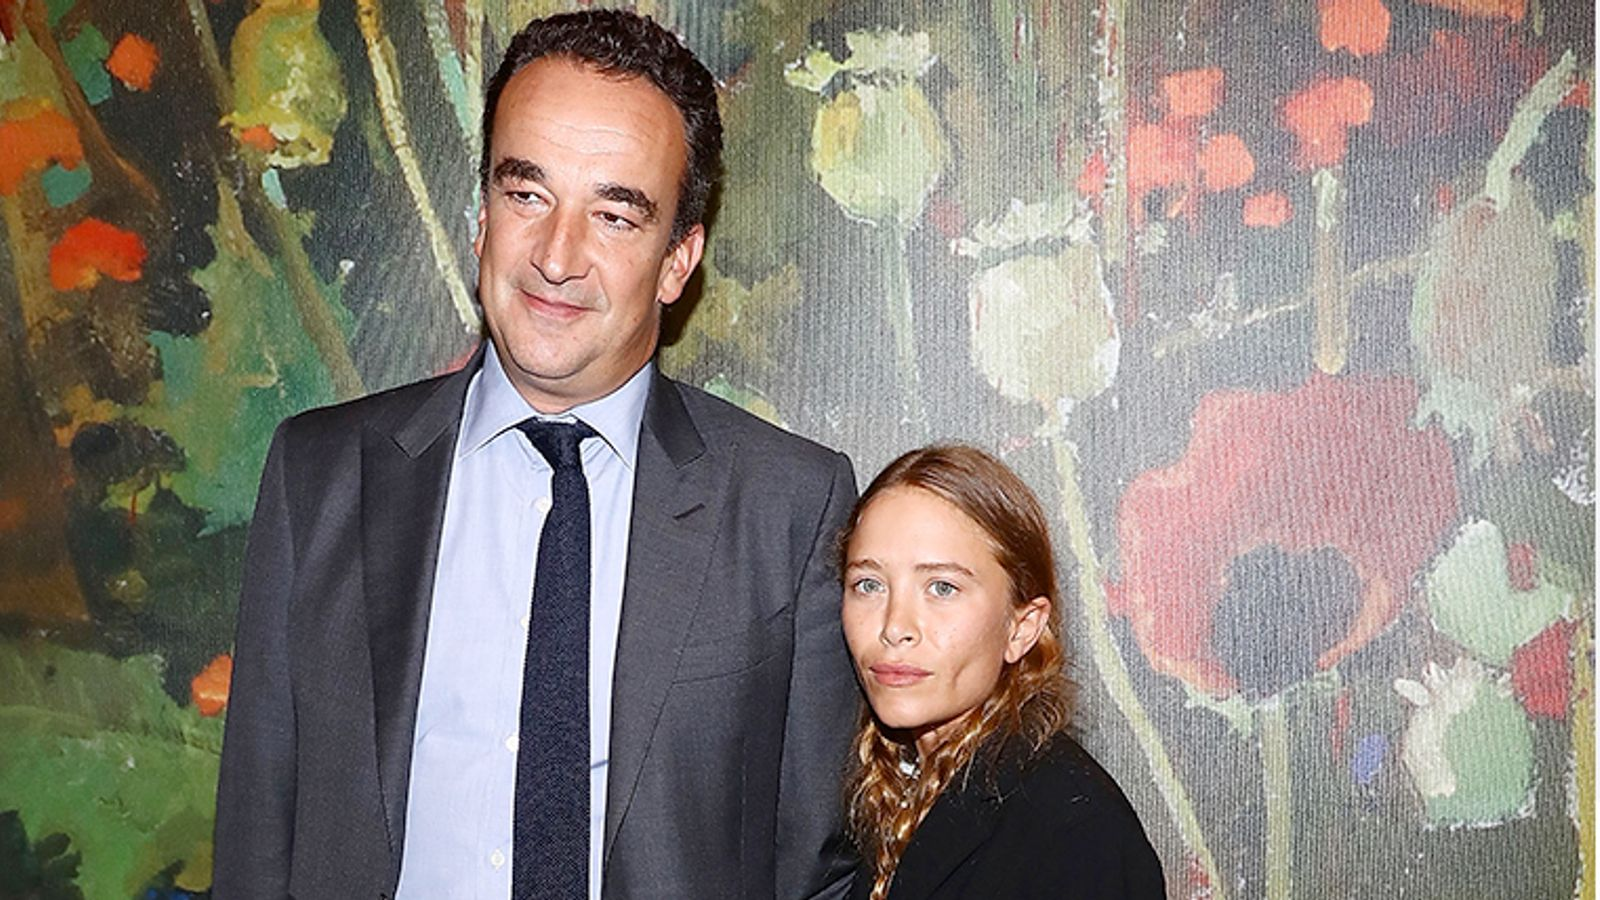 Coronavirus Mary Kate Olsen S Emergency Divorce Rejected Ents Arts News Sky News